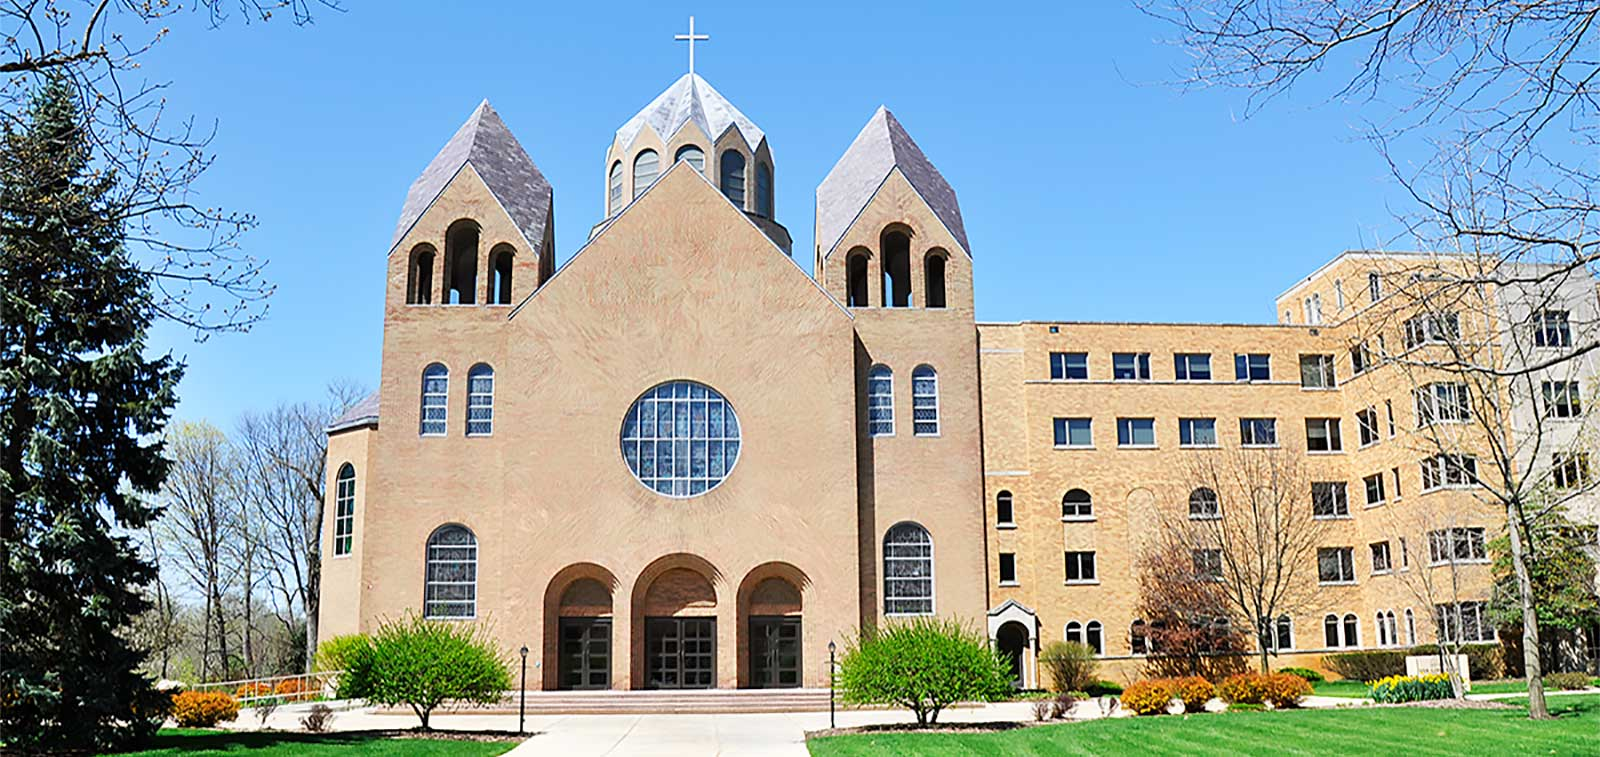 The Church of Our Lady of Loretto, Saint Mary's, Notre Dame, Indiana